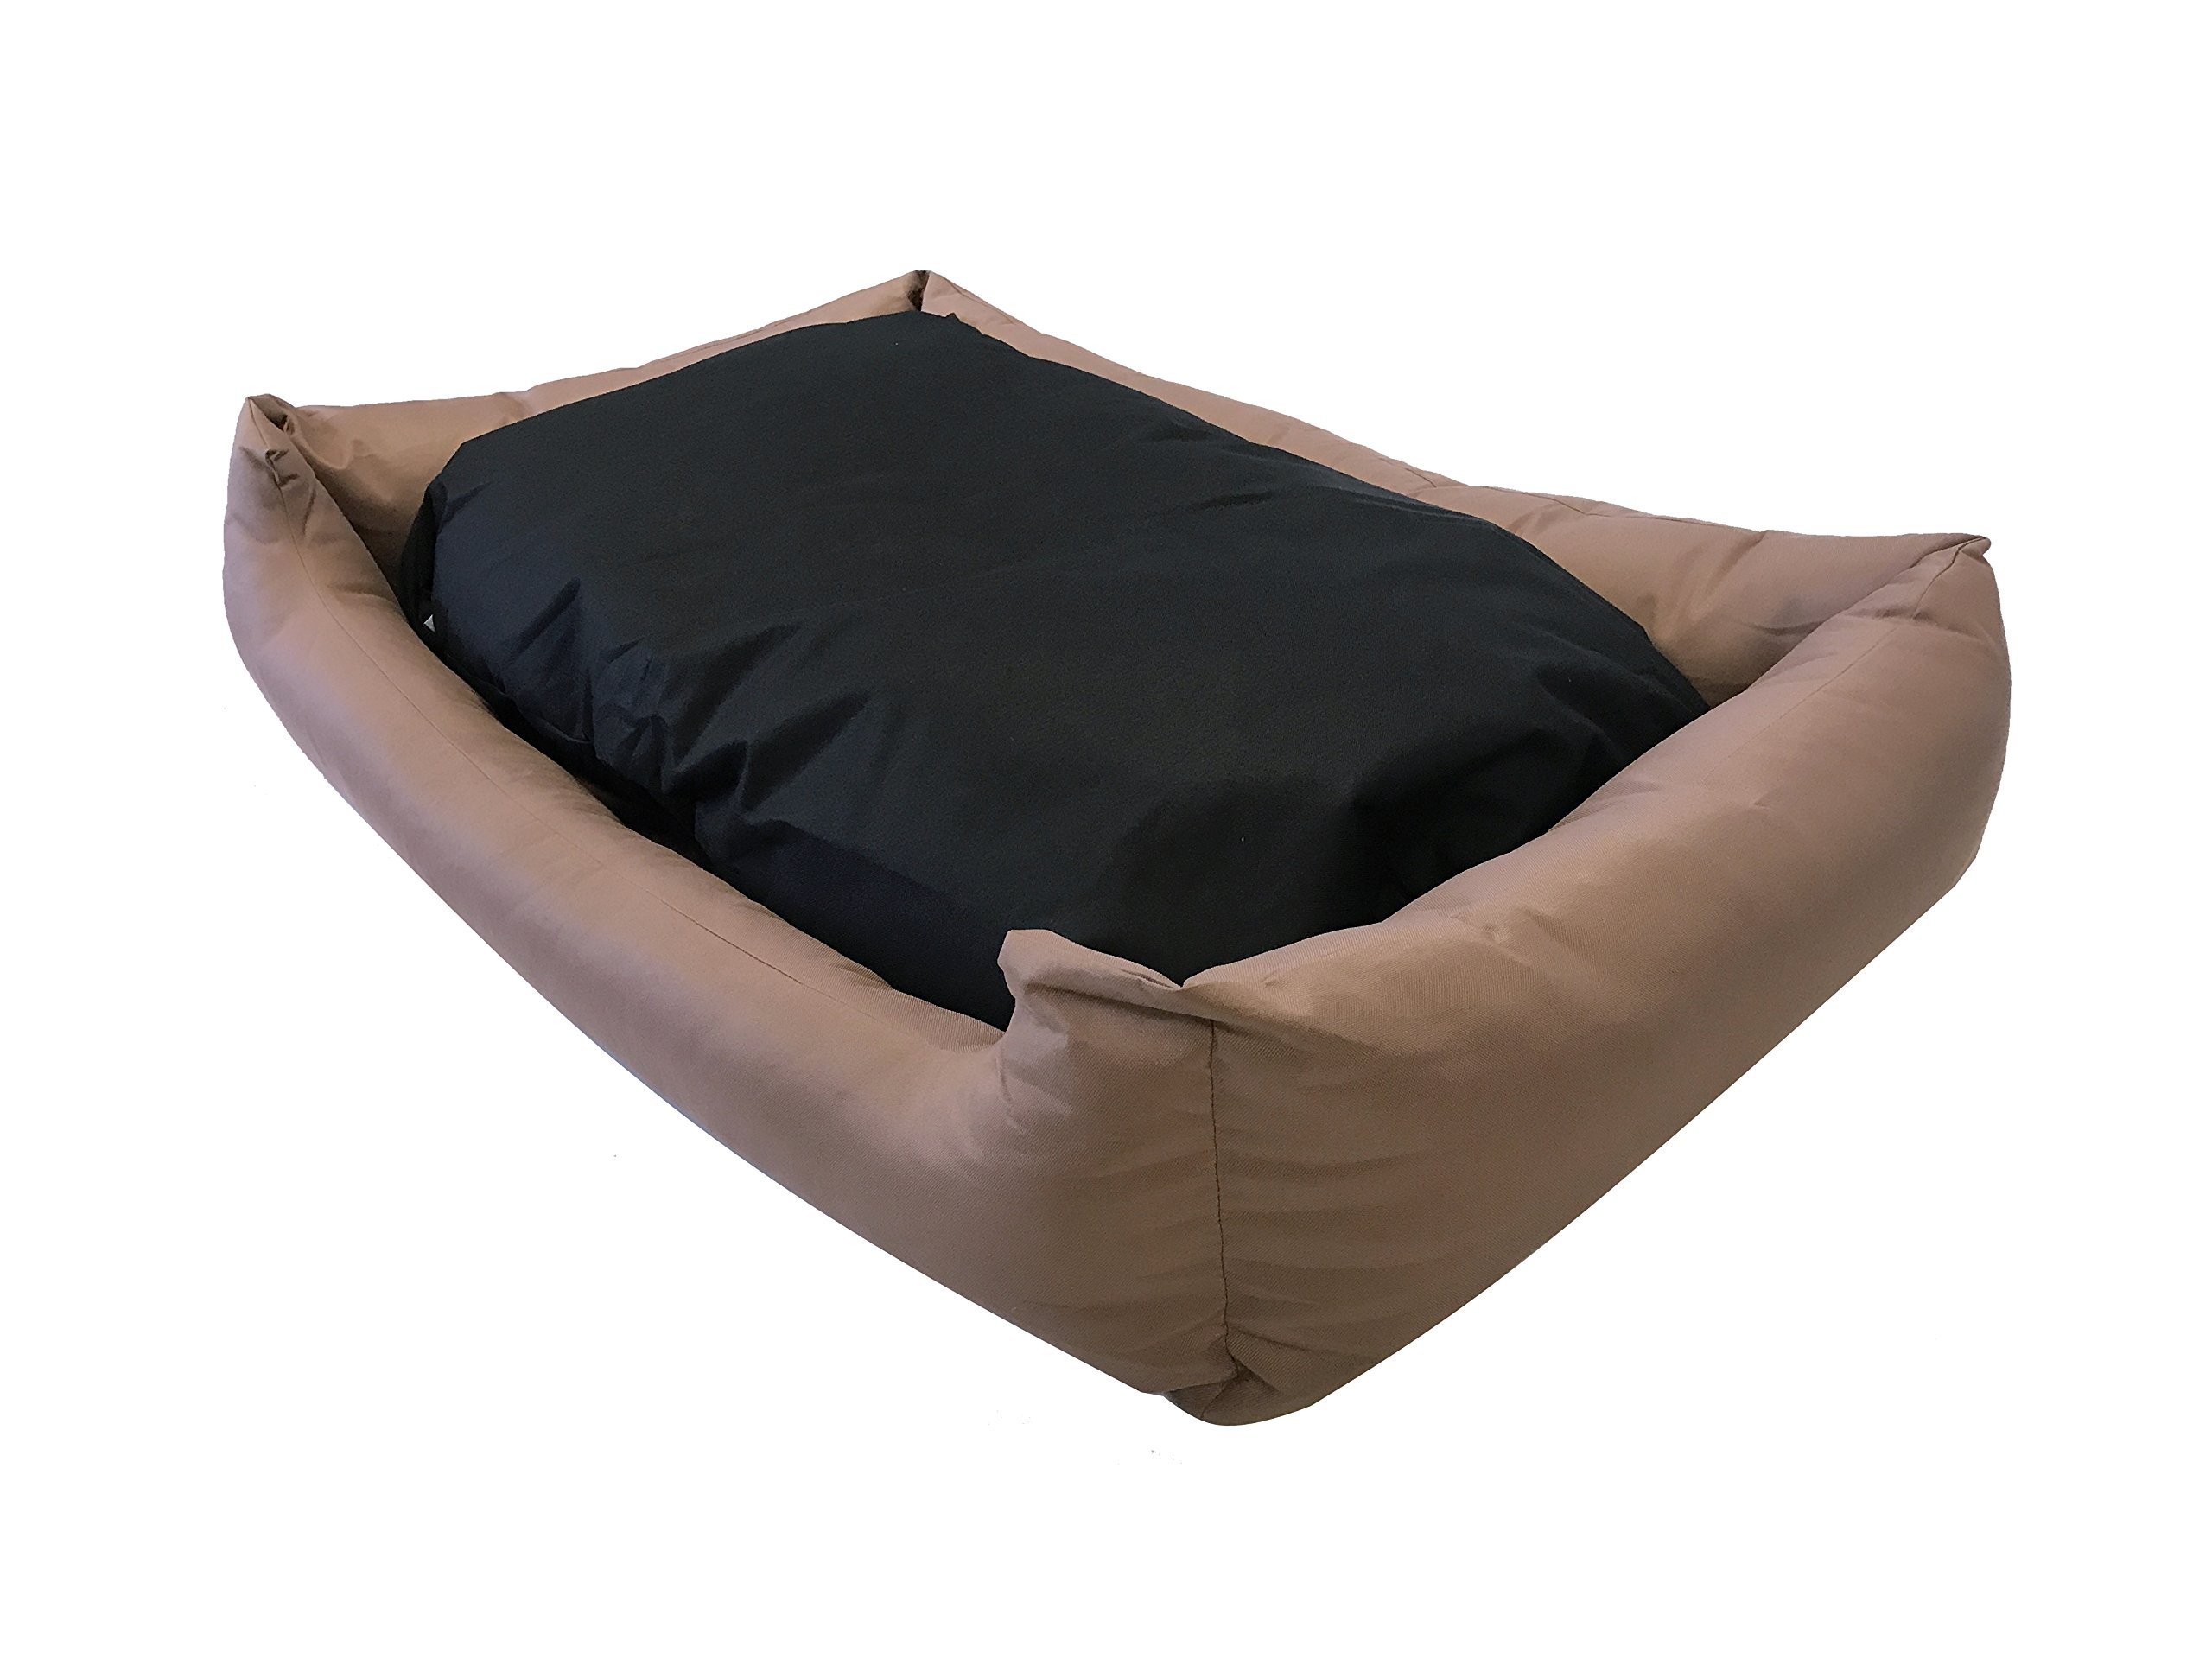 eConsumersUSA Dog Bed Stuffed Pillow with Polyester filling; Durable External OXFORD fabric Waterproof Anti Slip Cover and Inner Liner Included for Small to Large Dogs (48x30 inches, Brown)